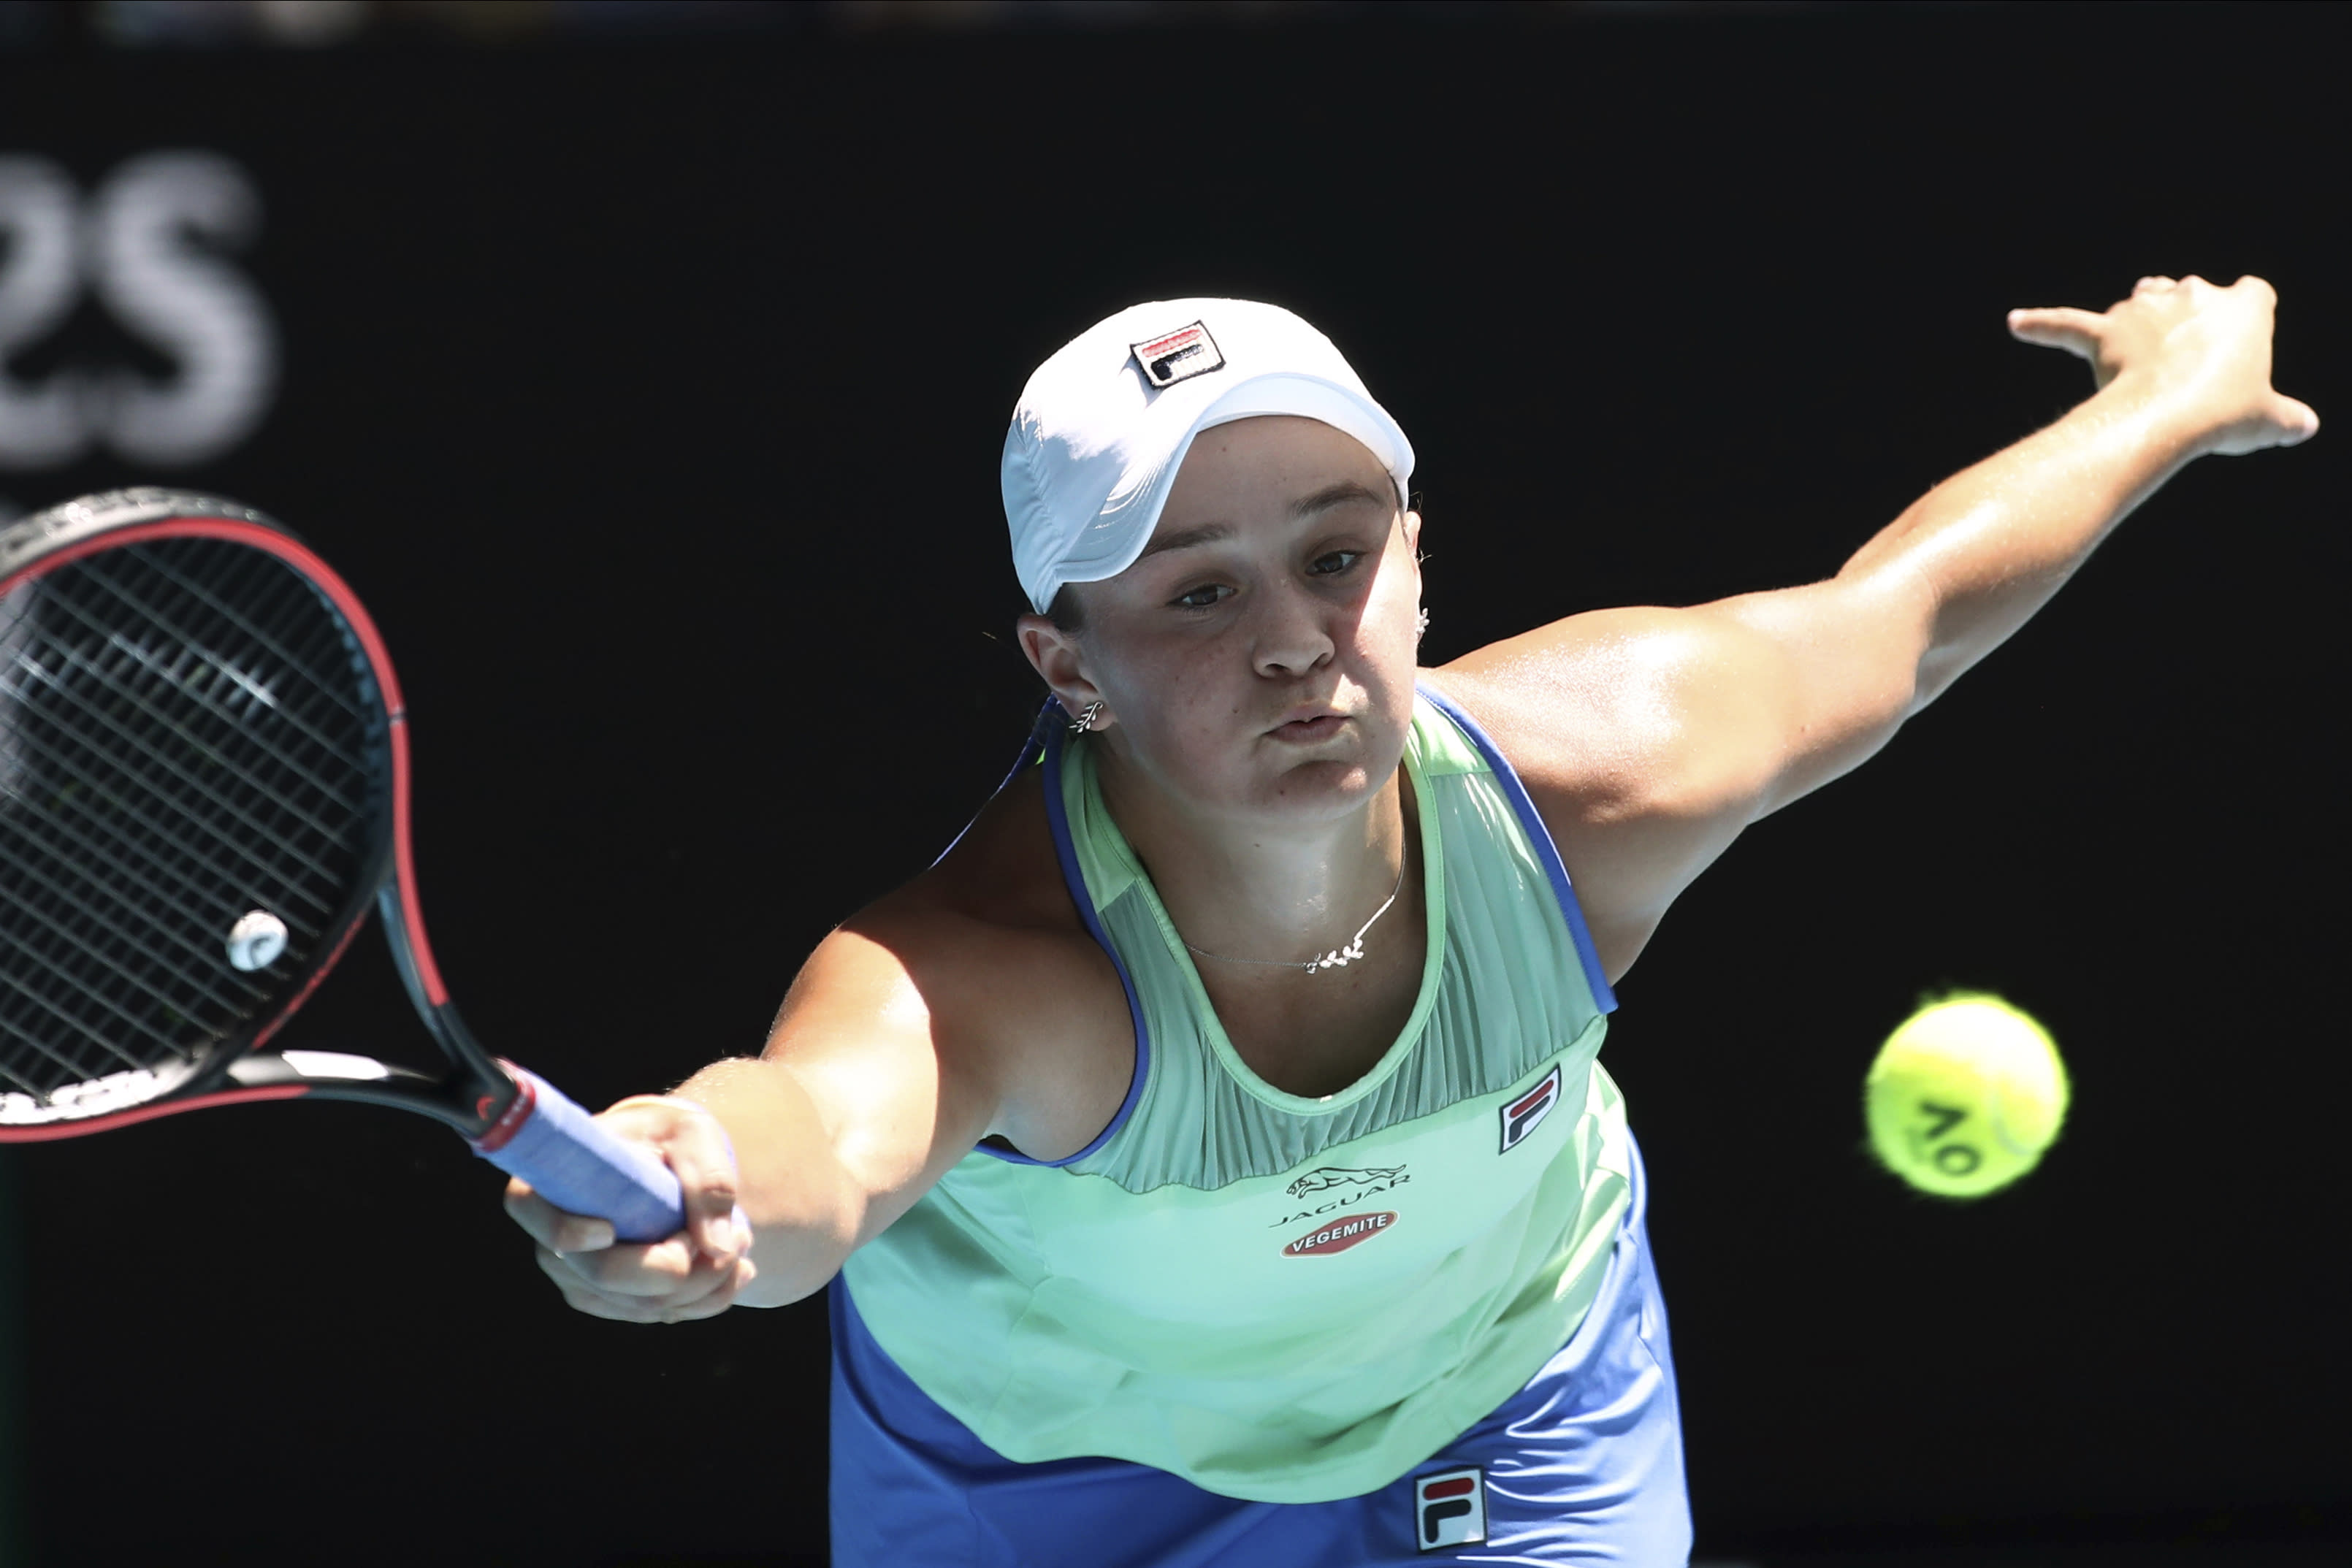 FILE - In this Jan. 28, 2020, file photo, Australia's Ash Barty makes a forehand return to Petra Kvitova of the Czech Republic during their quarterfinal match at the Australian Open tennis championship in Melbourne, Australia. Top-ranked Ash Barty has withdrawn from the U.S. Open because she is not comfortable with traveling during the coronavirus pandemic. (AP Photo/Dita Alangkara, File)